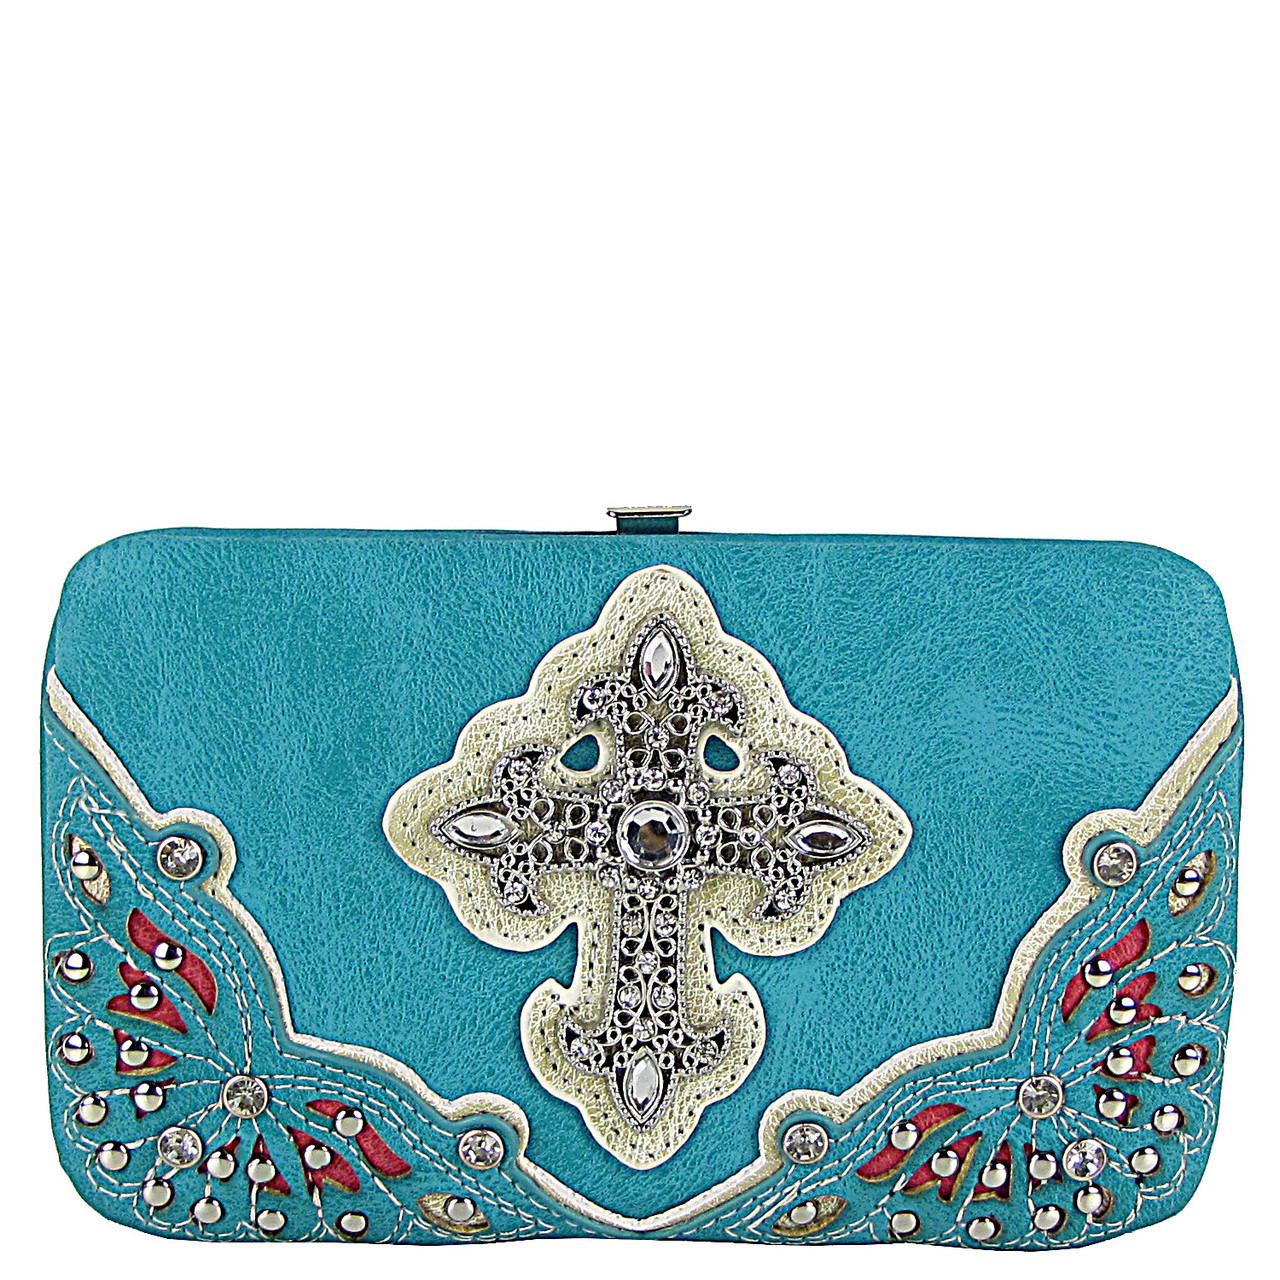 TURQUOISE RHINESTONE CROSS WESTERN FLAT THICK WALLET FW2-04116TRQ